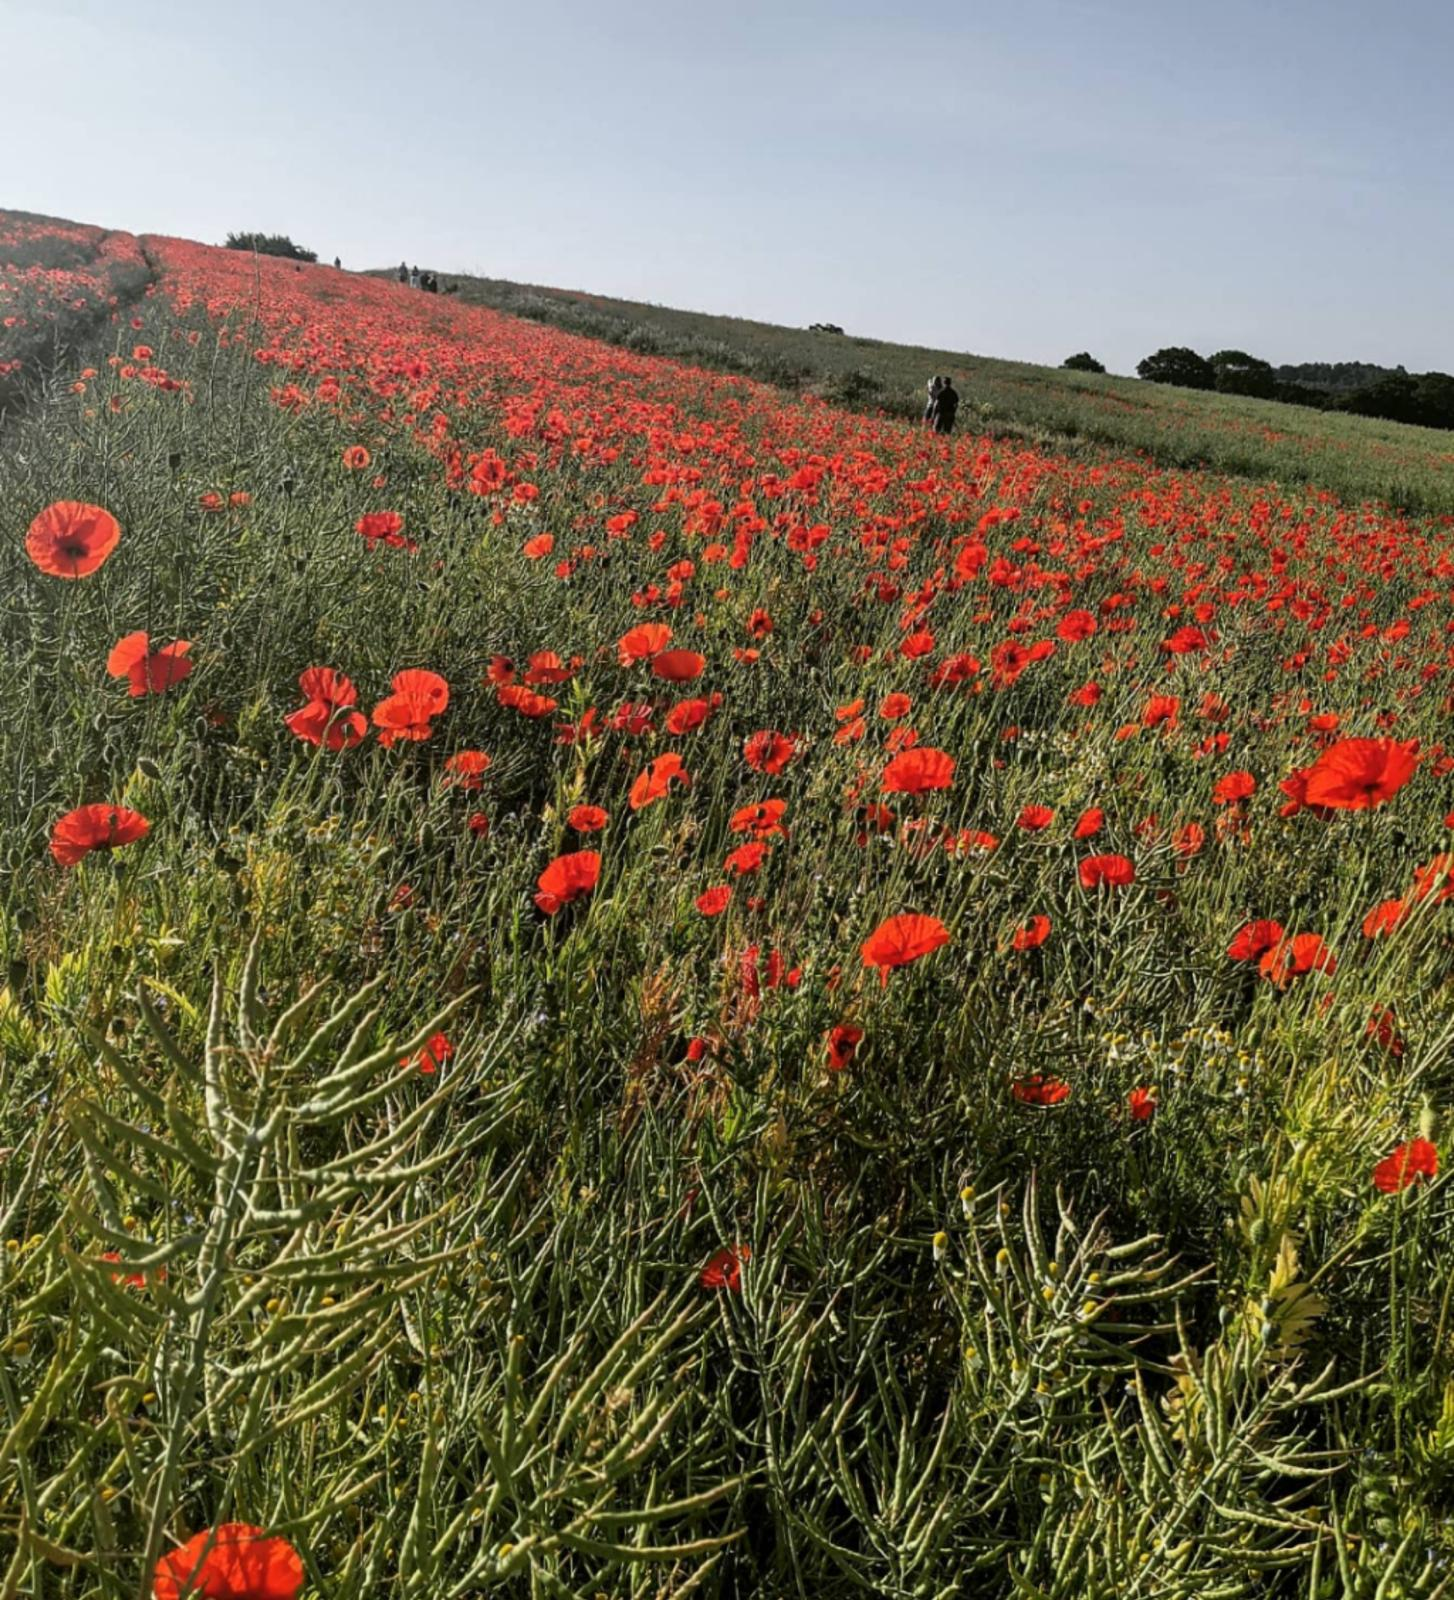 Photograph of poppies in a field on the slopes of Chantry Wood